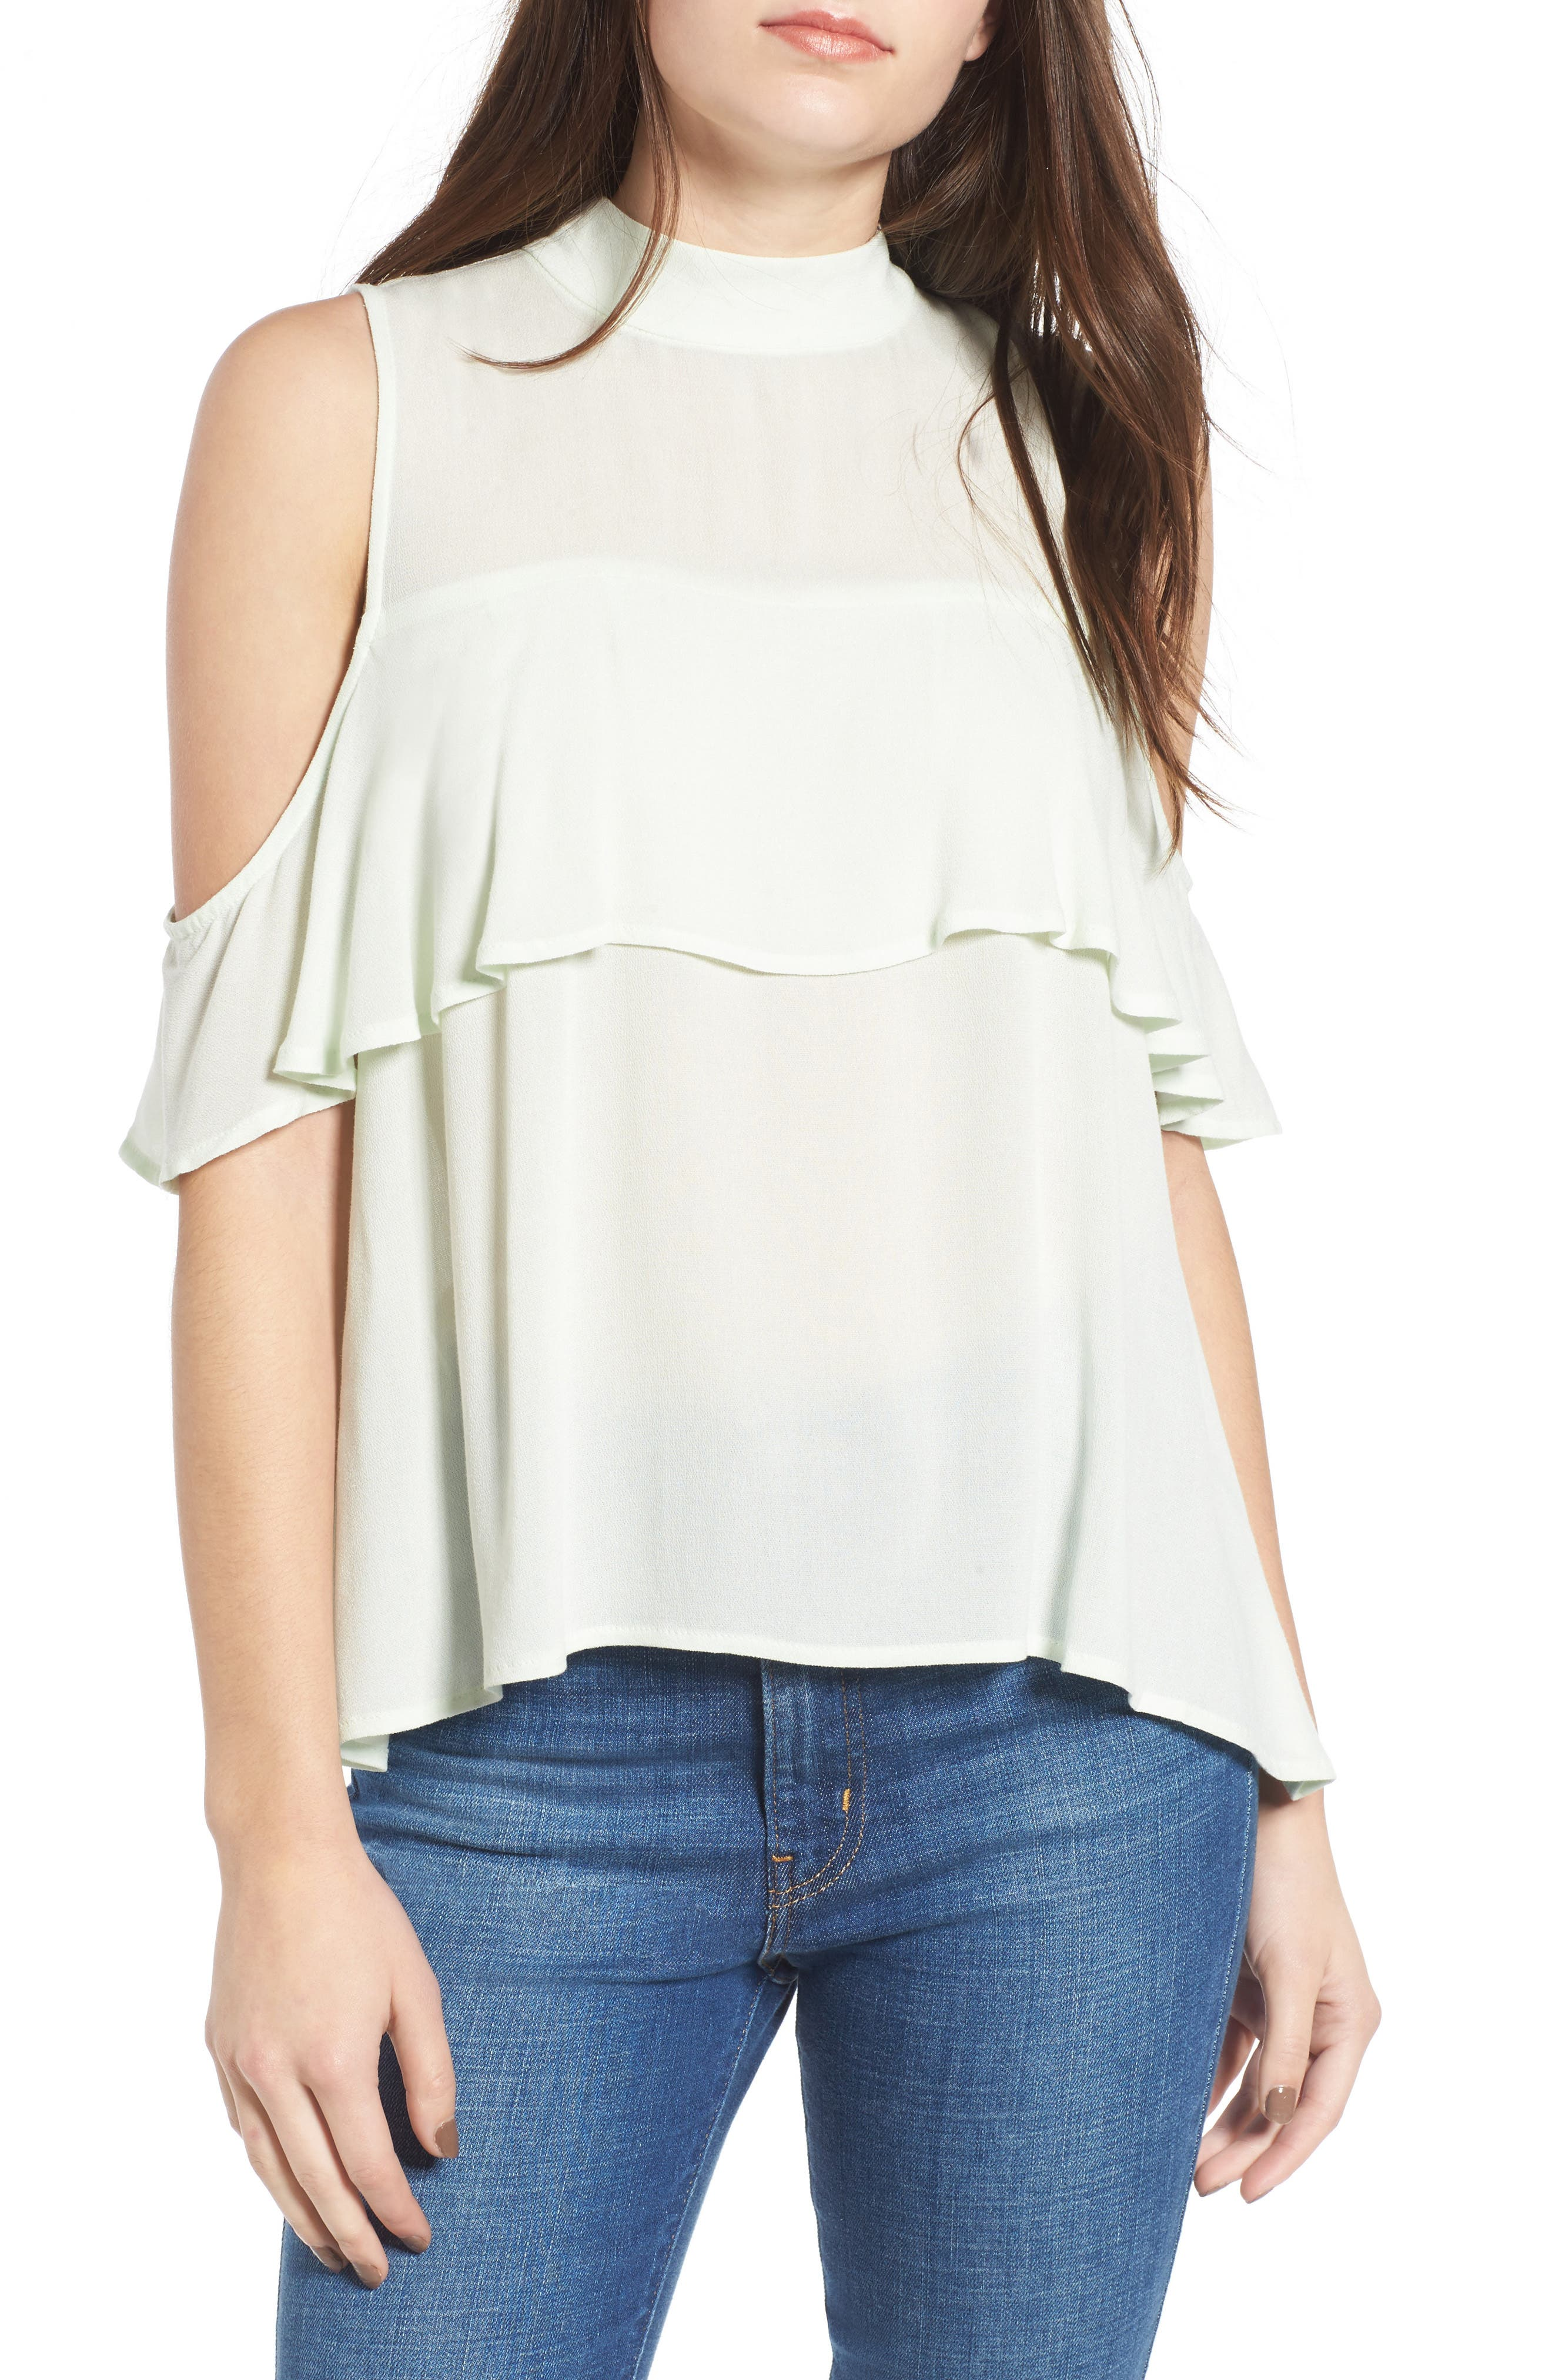 Alternate Image 1 Selected - BP. Ruffle Cold Shoulder Top